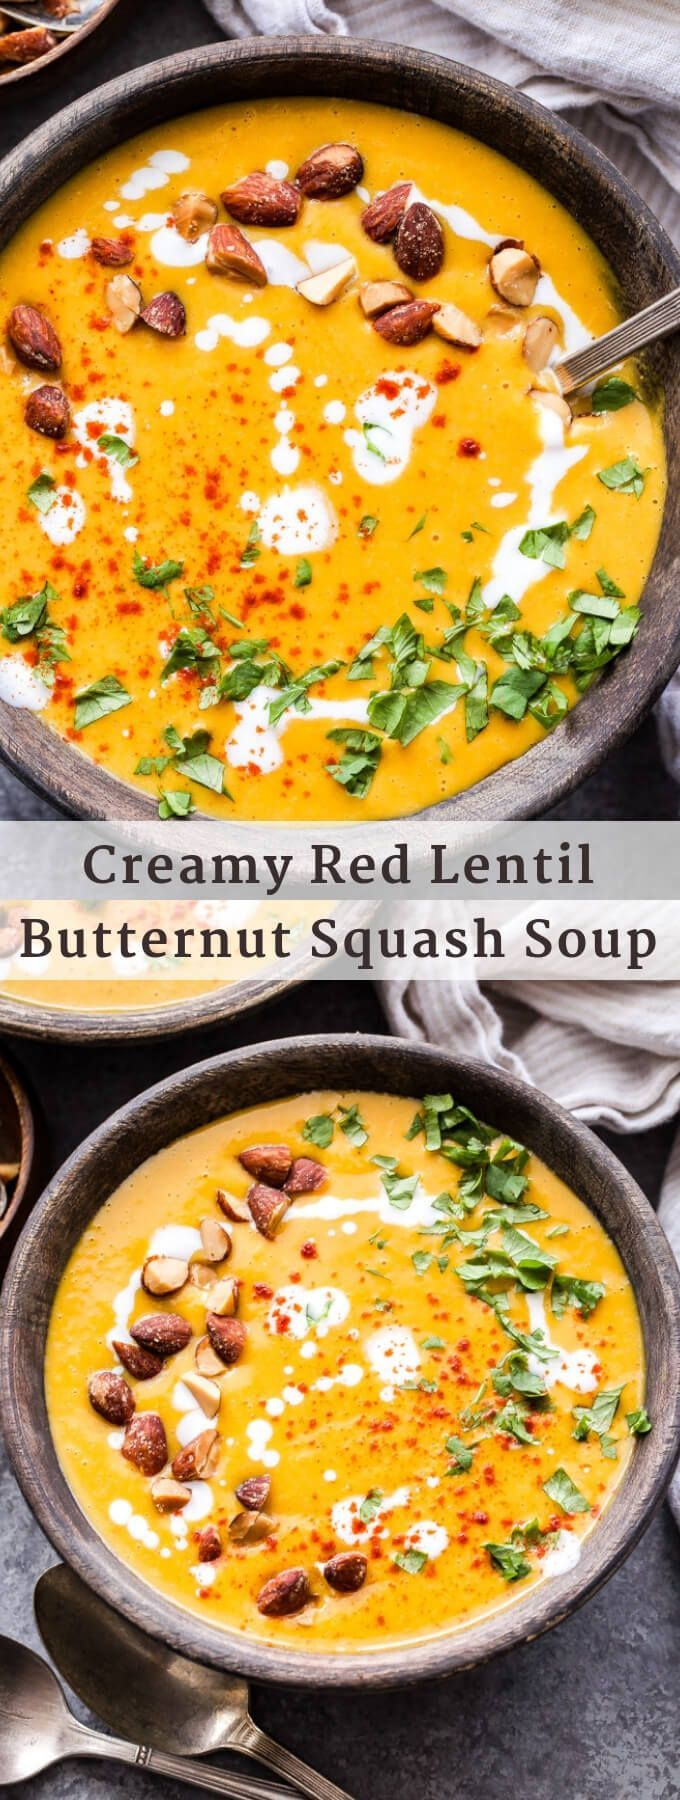 This Creamy Red Lentil Butternut Squash Soup is a healthy and delicious vegetarian meal that's packed with protein and nutrients! Top it with smoked almonds, cilantro and a drizzle of Greek yogurt for an easy weeknight dinner. #soup #lentils #butternutsquash #vegetarian #easyrecipe #healthydinner #butternutsquashsoup